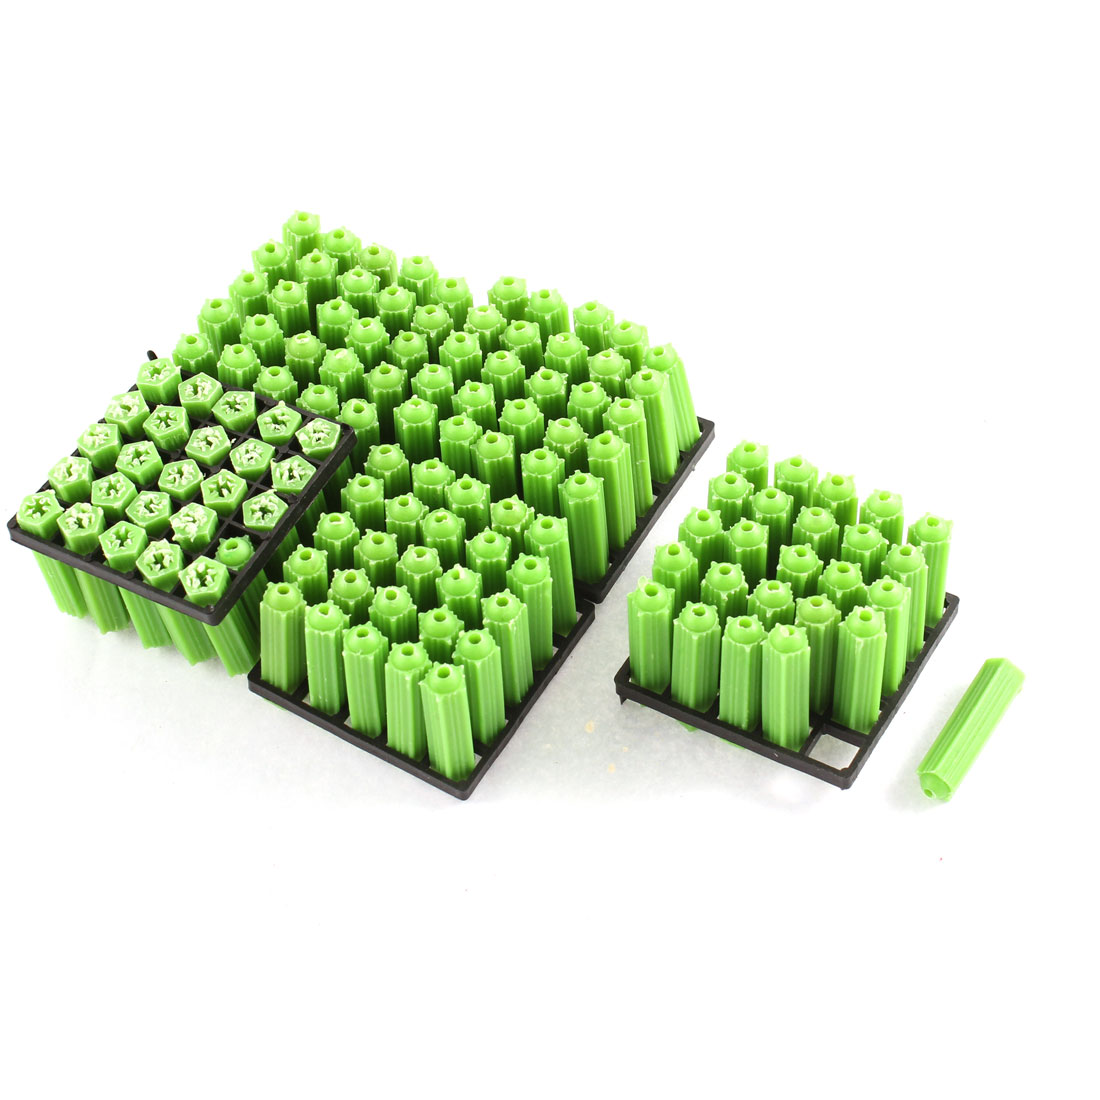 125Pcs Green Plastic Masonry Screws Anchor Fixing Star Wall Connector 7x26mm